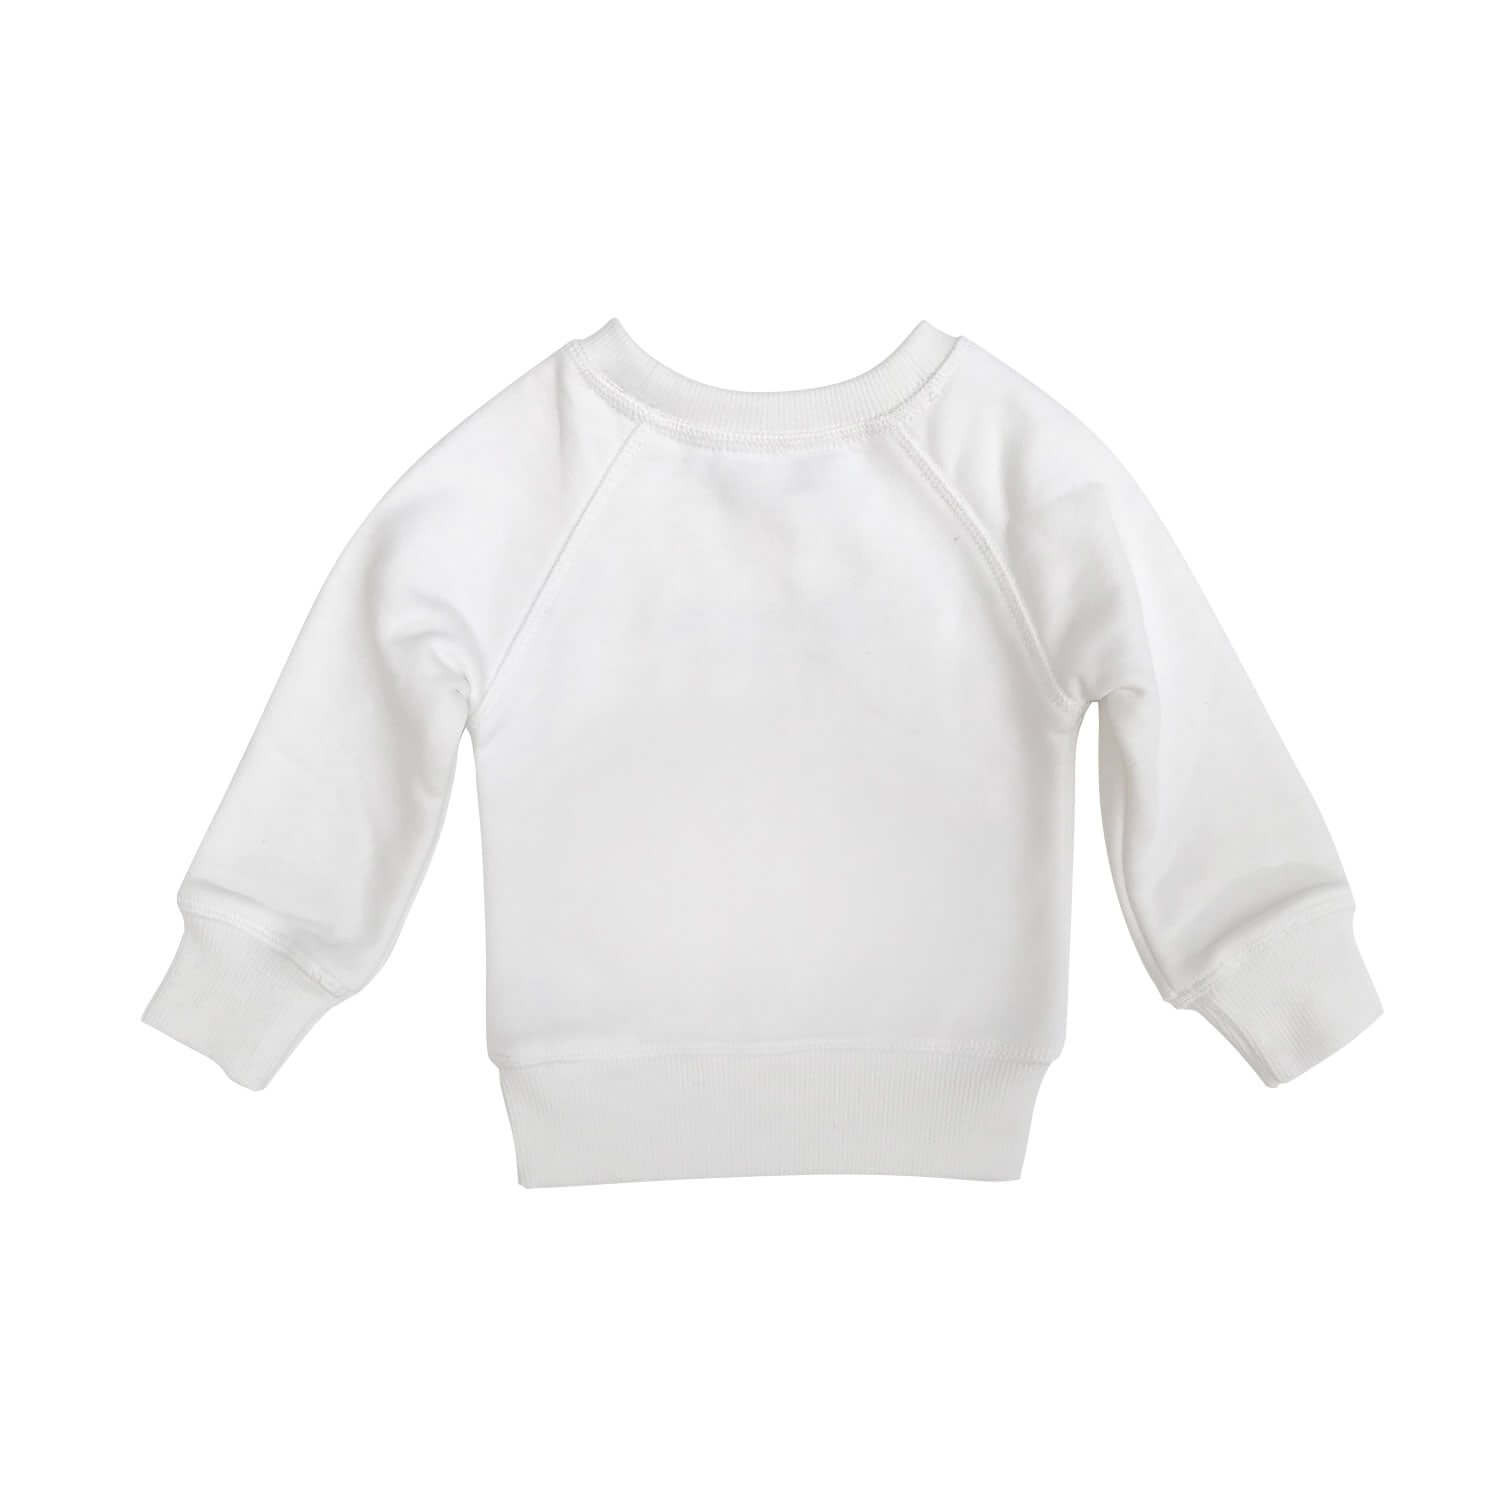 Casa Kids White Baby Jumper Back